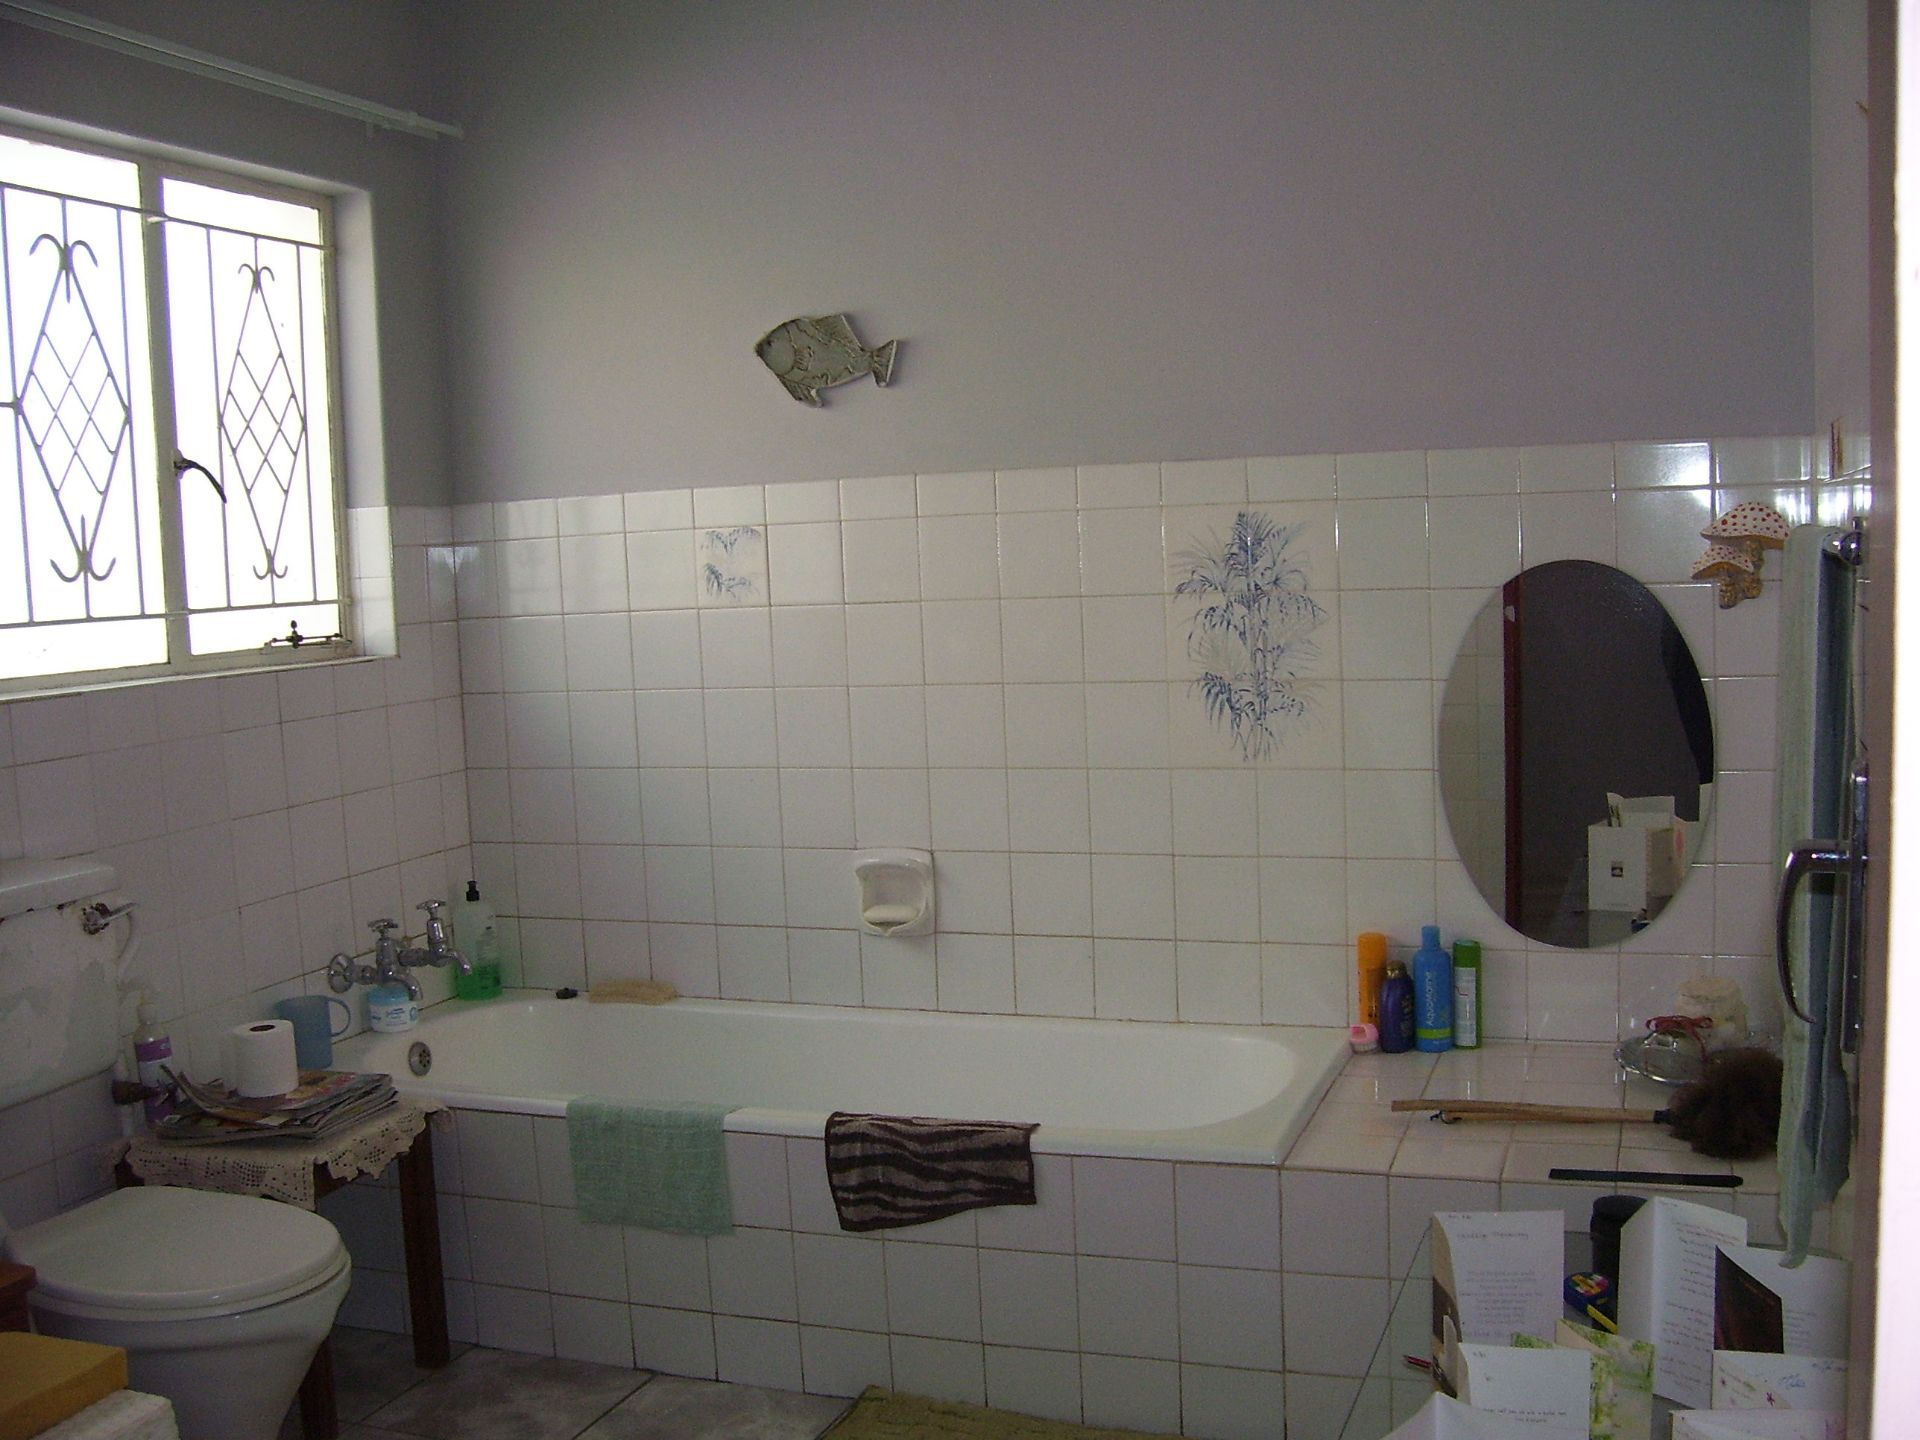 Suid Dorp property for sale. Ref No: 13503243. Picture no 15